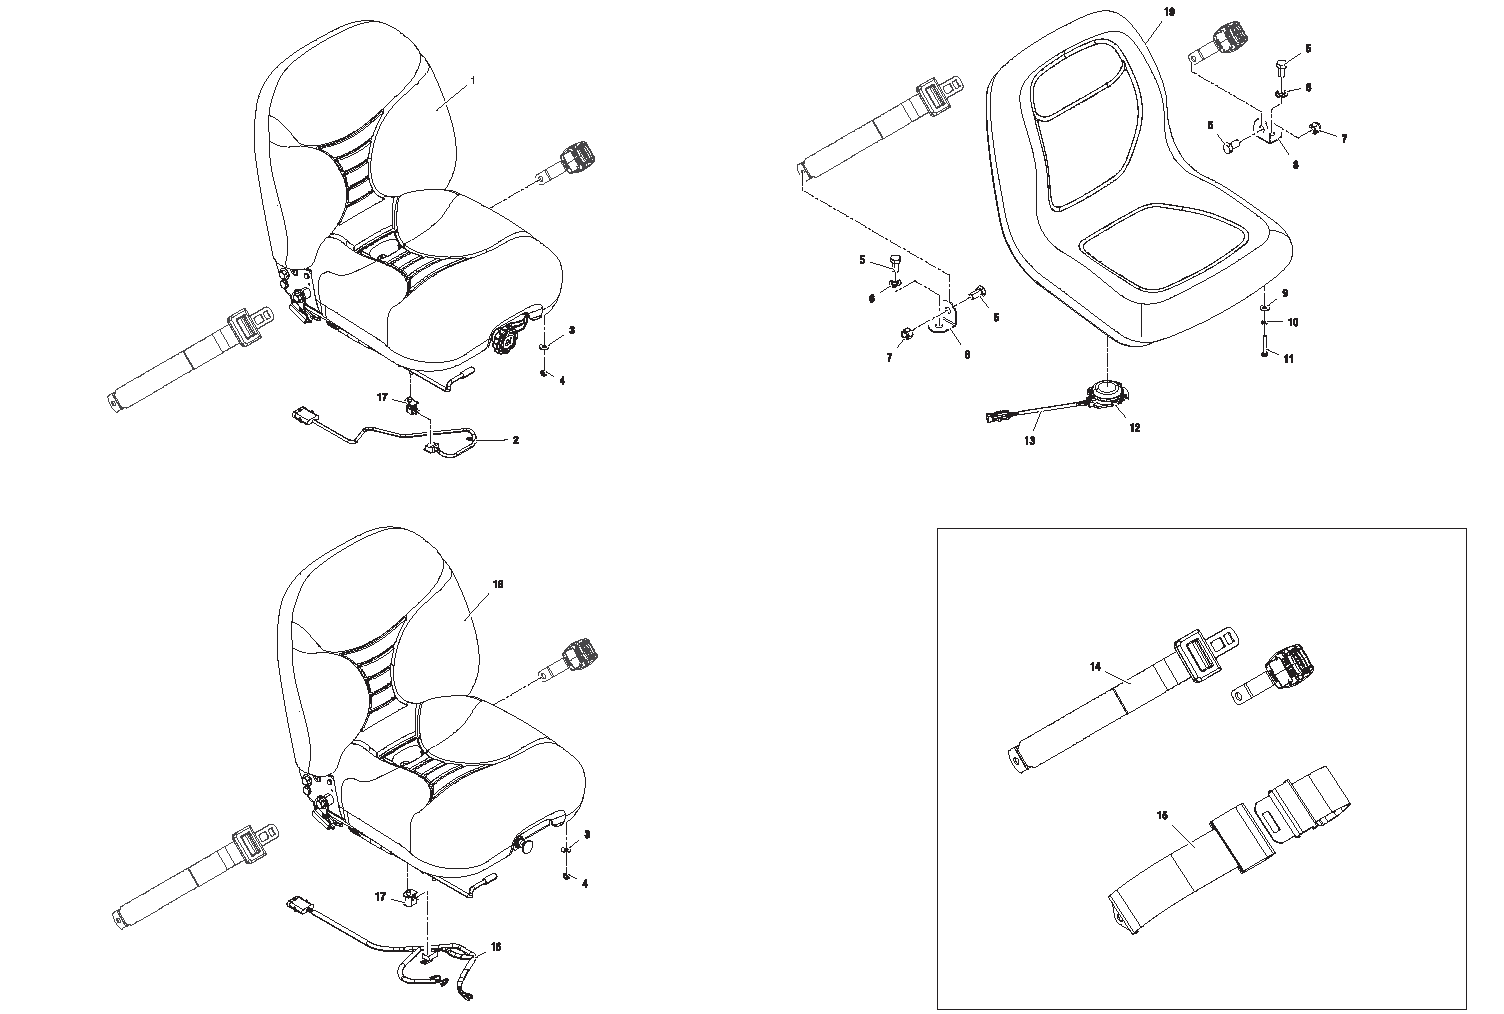 Diagram 7-5A Seat - Seatbelt - Seat Switches